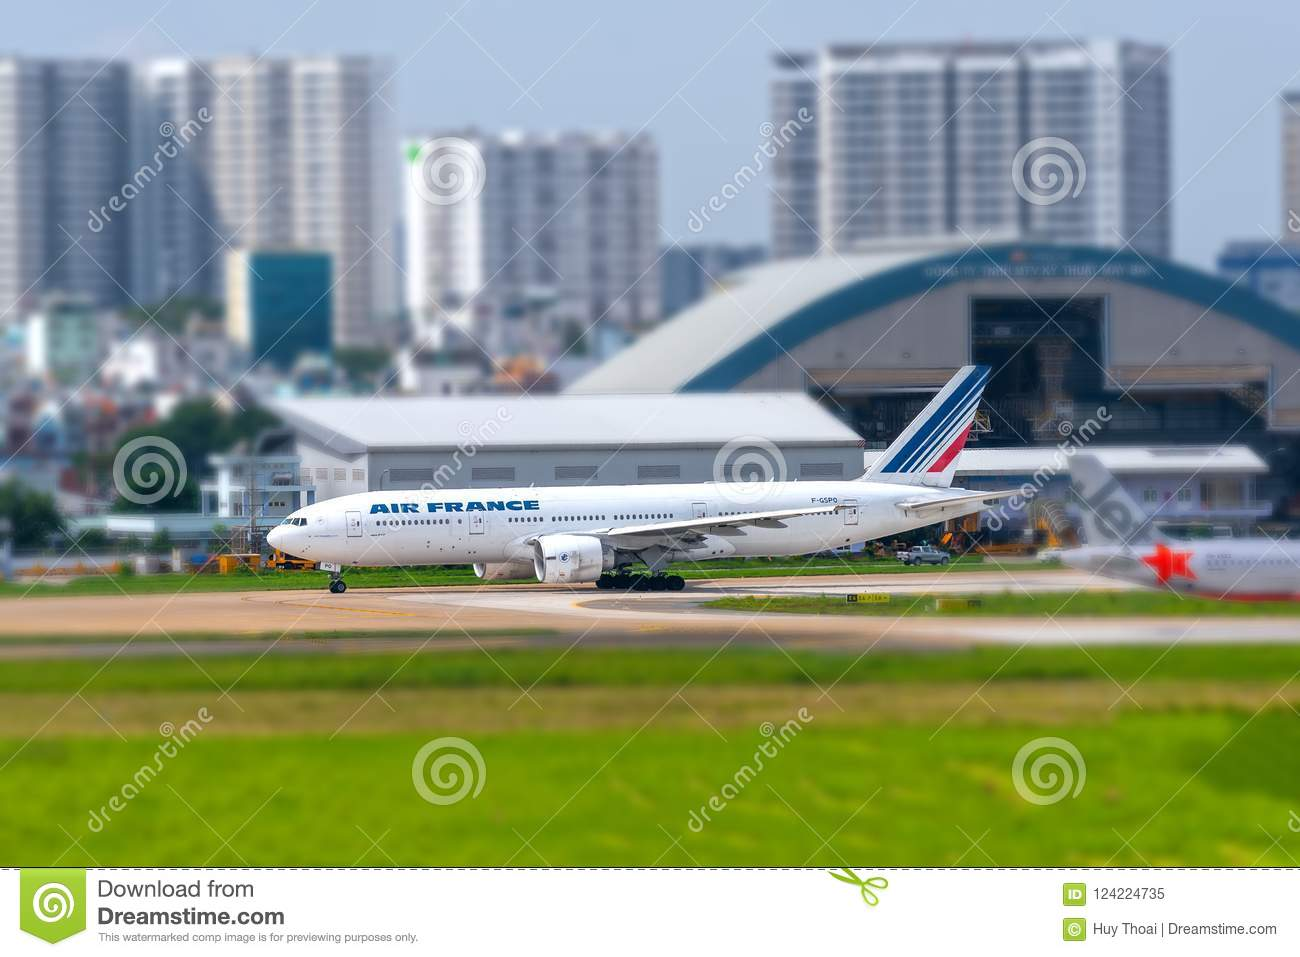 Boeing 777 Passenger Aircraft Of Air France Airline Is